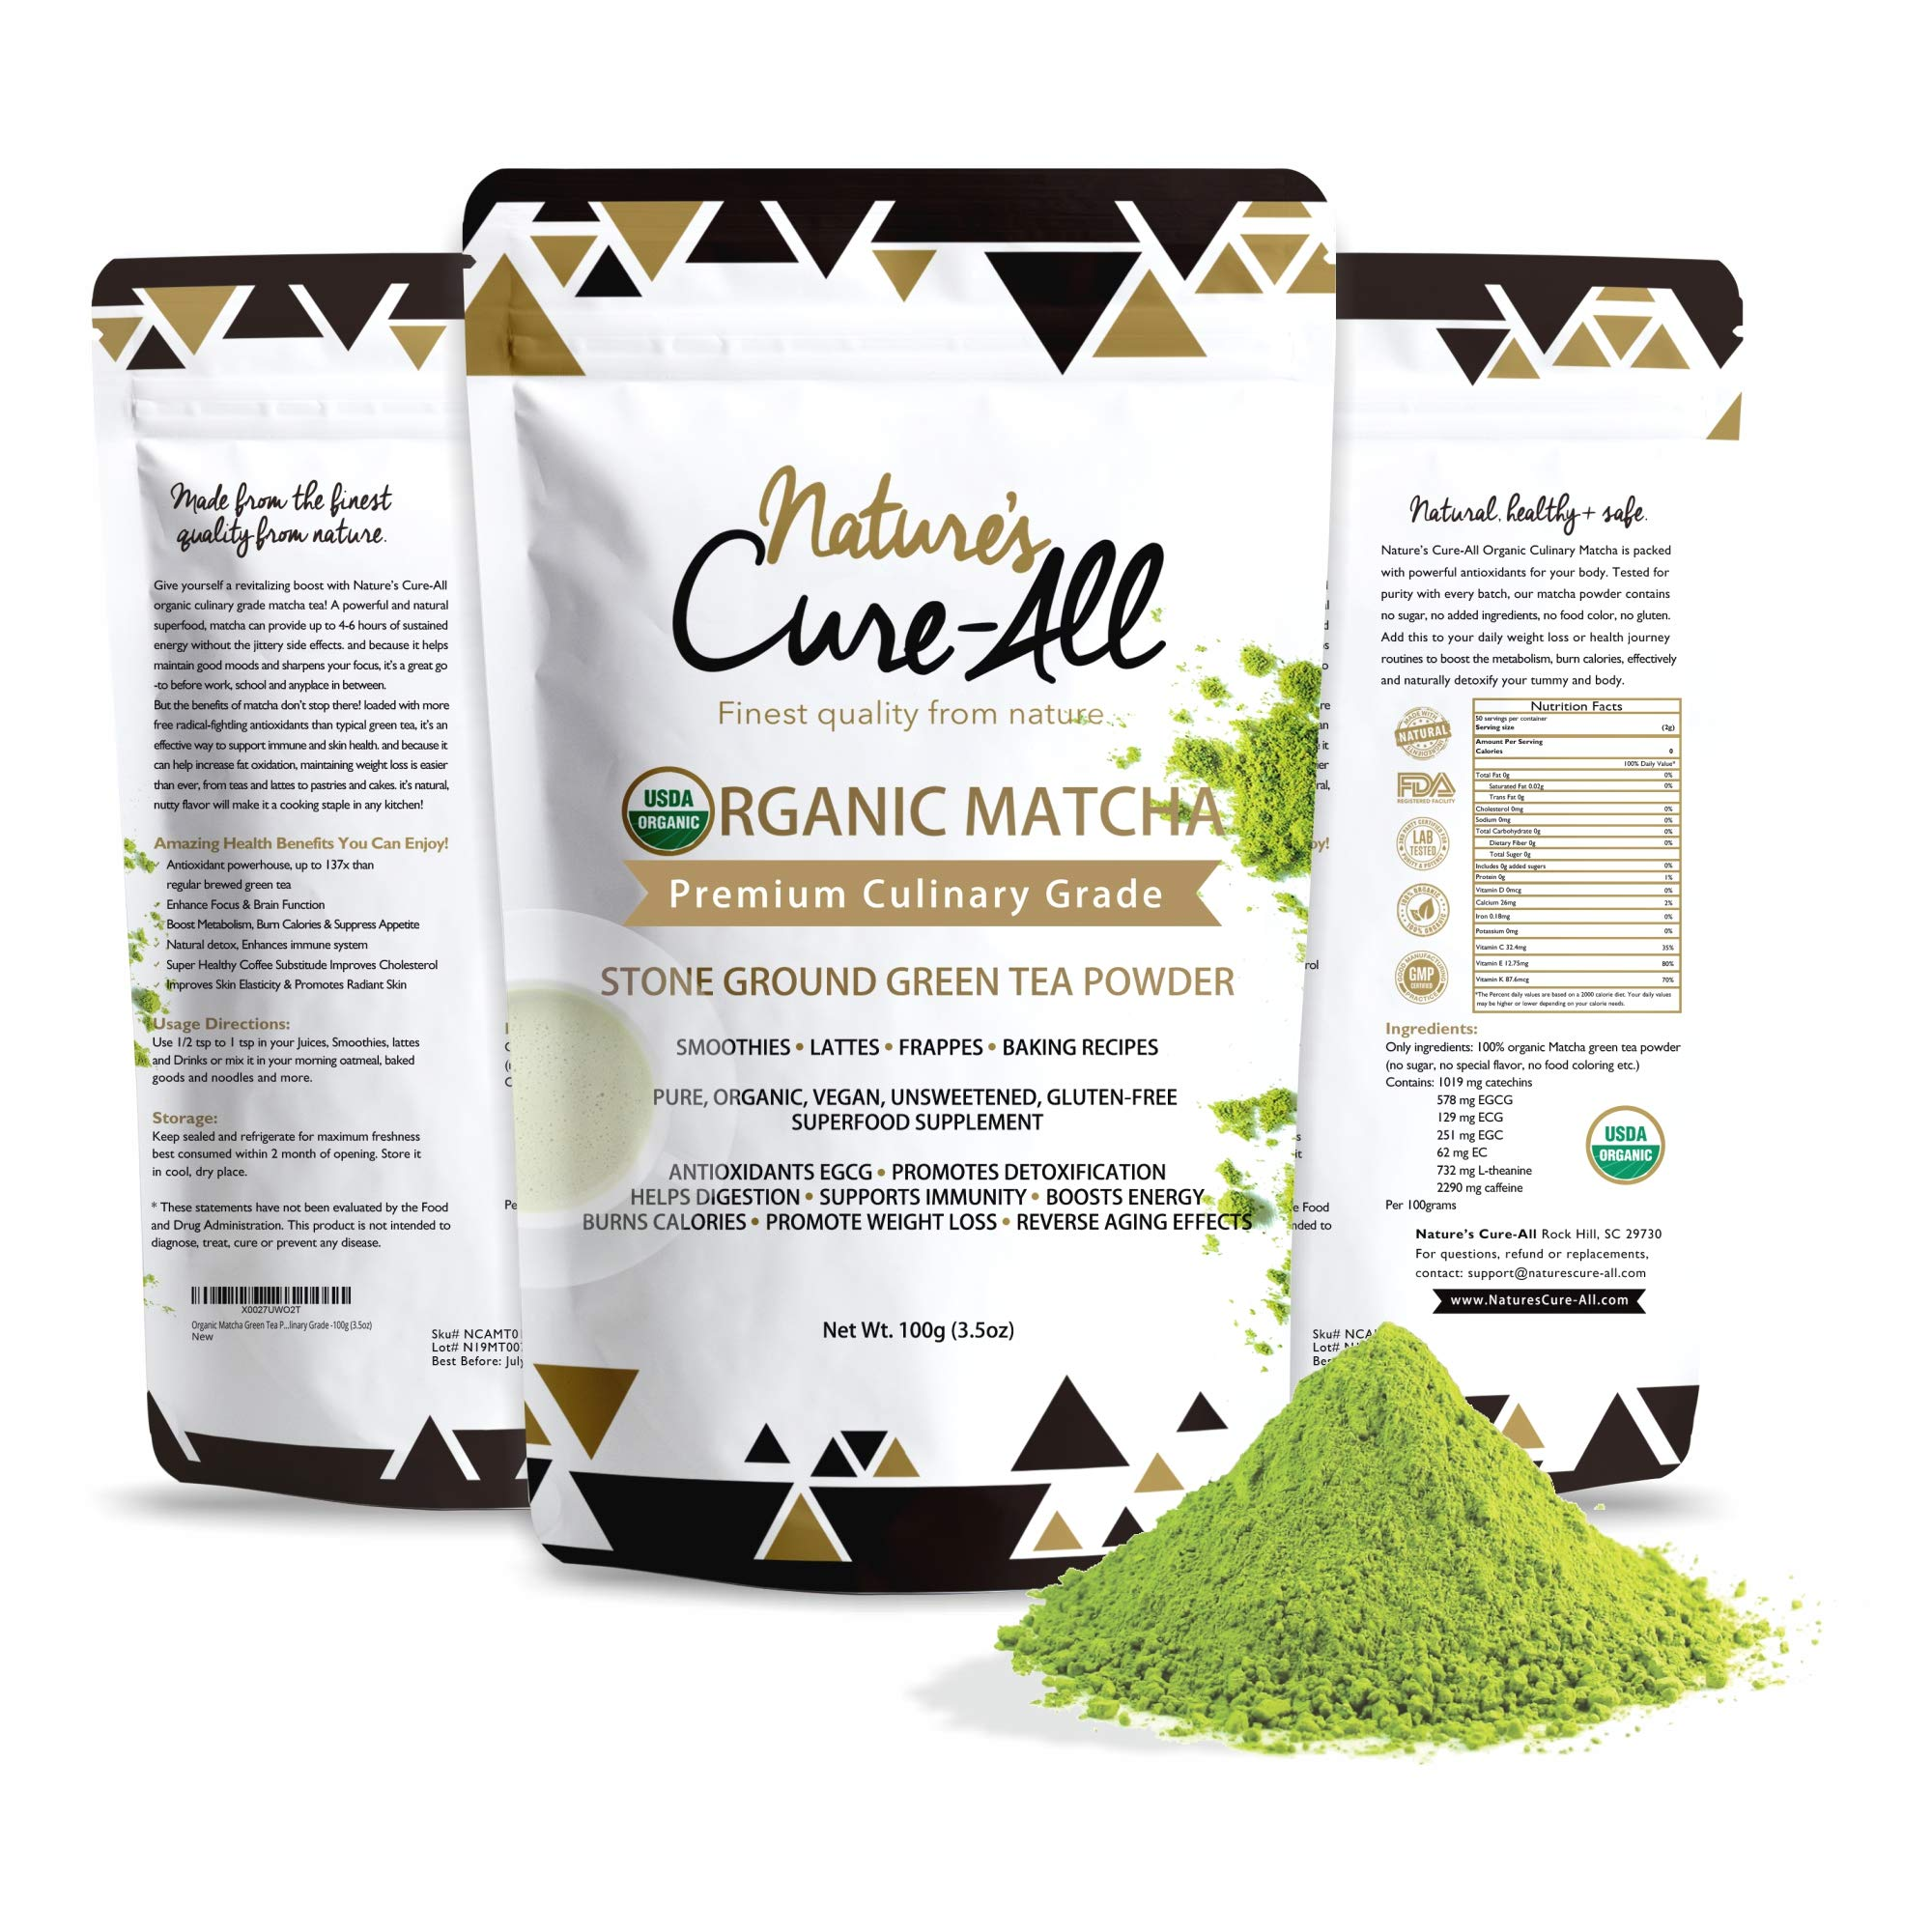 Organic Matcha Green Tea Powder 3.5oz (100g) | USDA Certified, Authentic Japanese Origin | Natural Energy & Metabolism Booster-for Baking, Smoothies, Lattes & Weight Loss Shakes-Premium Culinary Grade by Nature's Cure-All